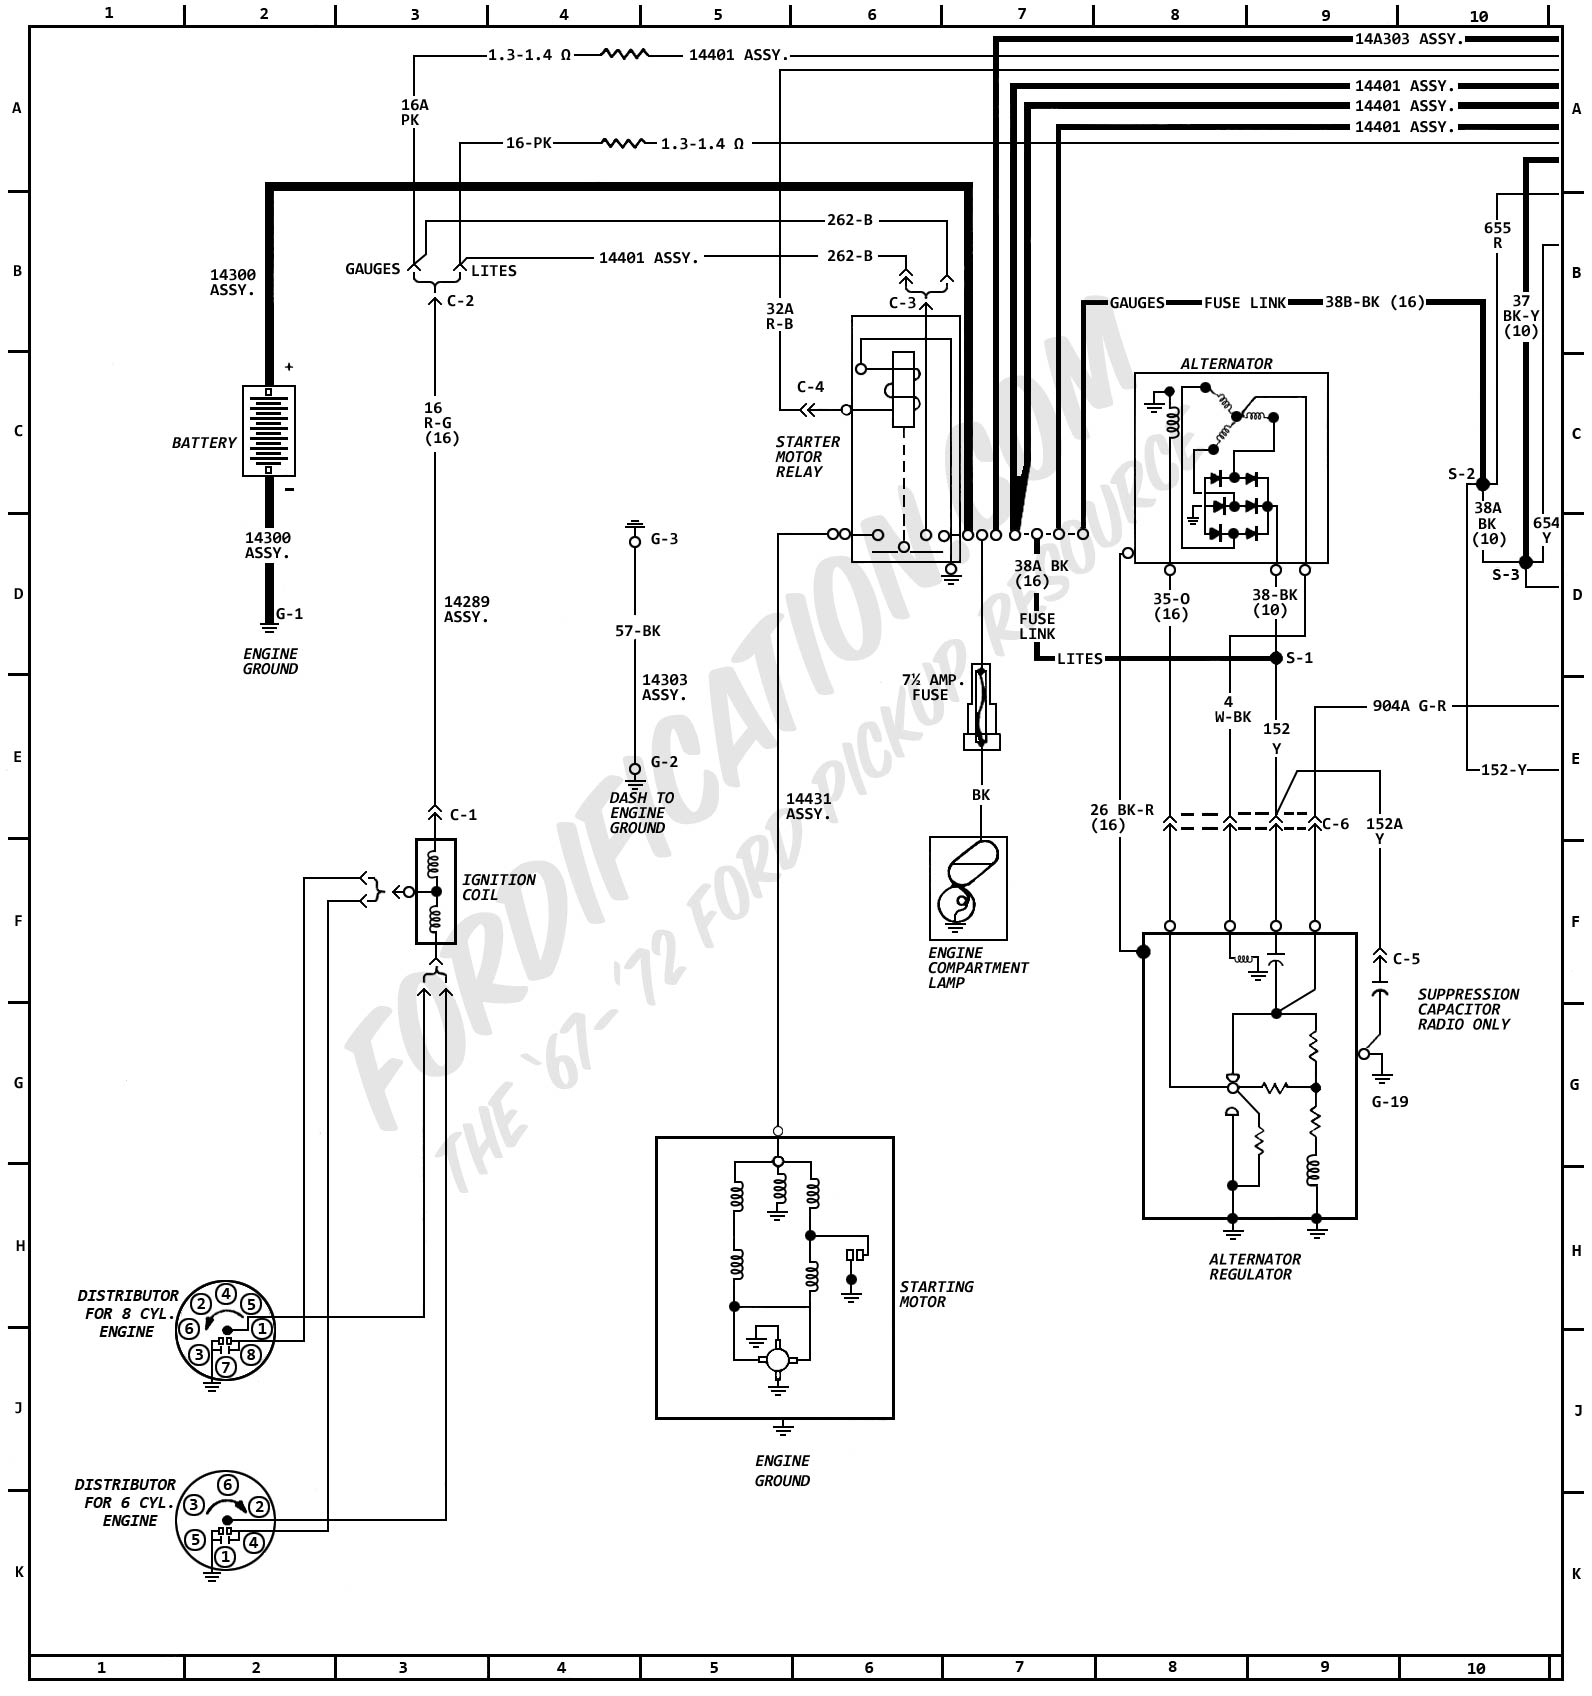 Chevy C10 Wiring Diagram